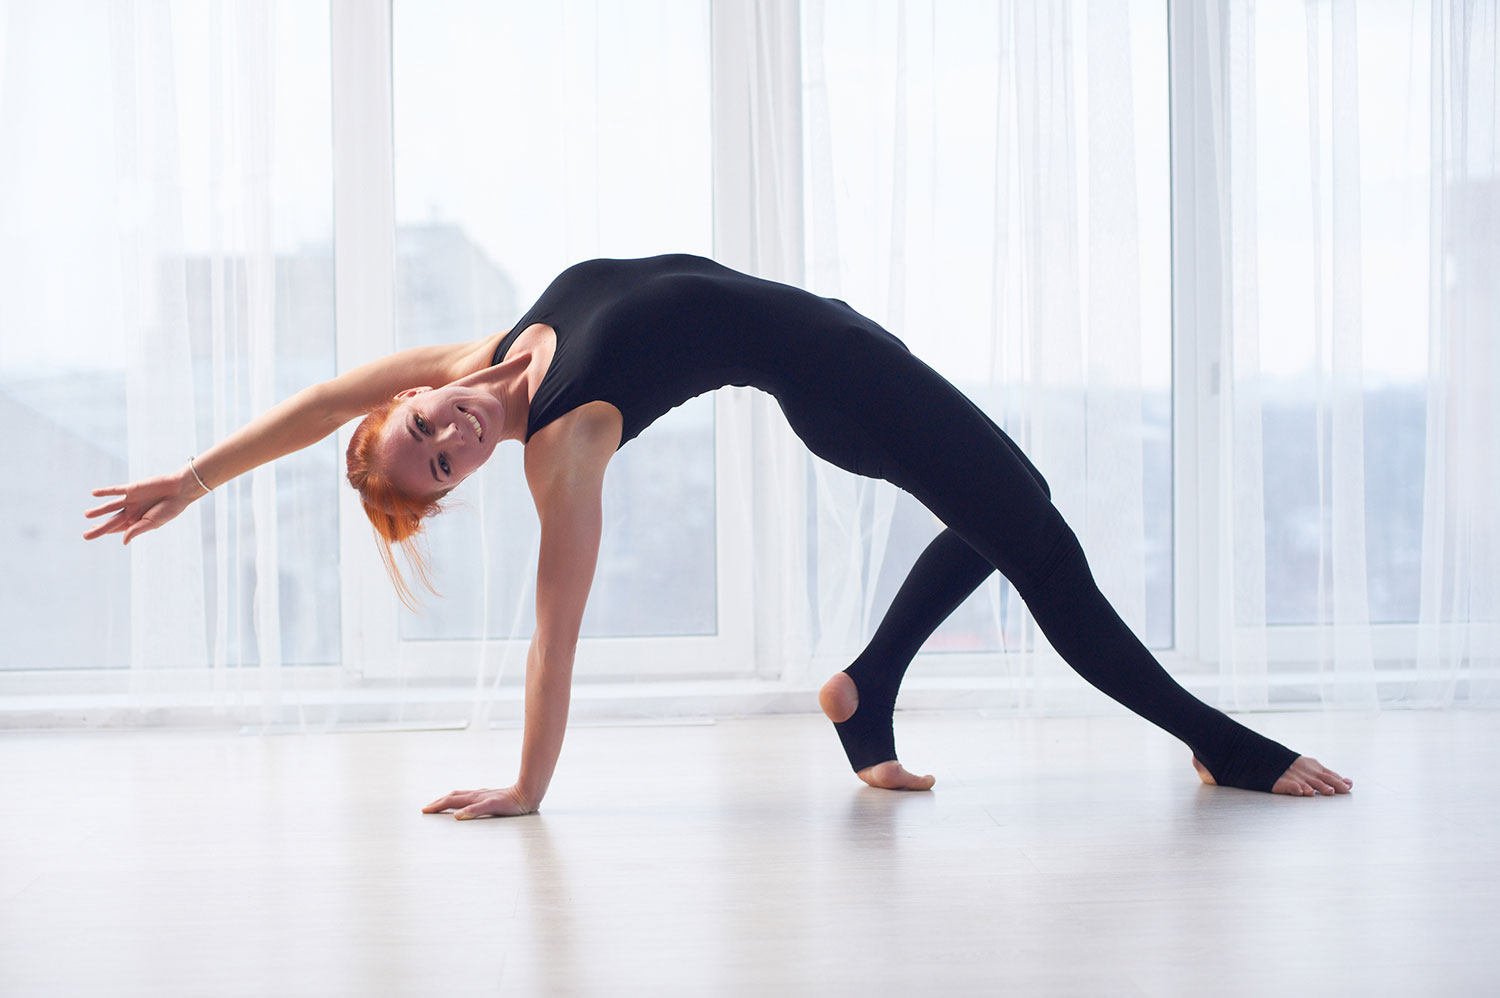 15 Underrated Yoga Poses to Incorporate Into Your Practice